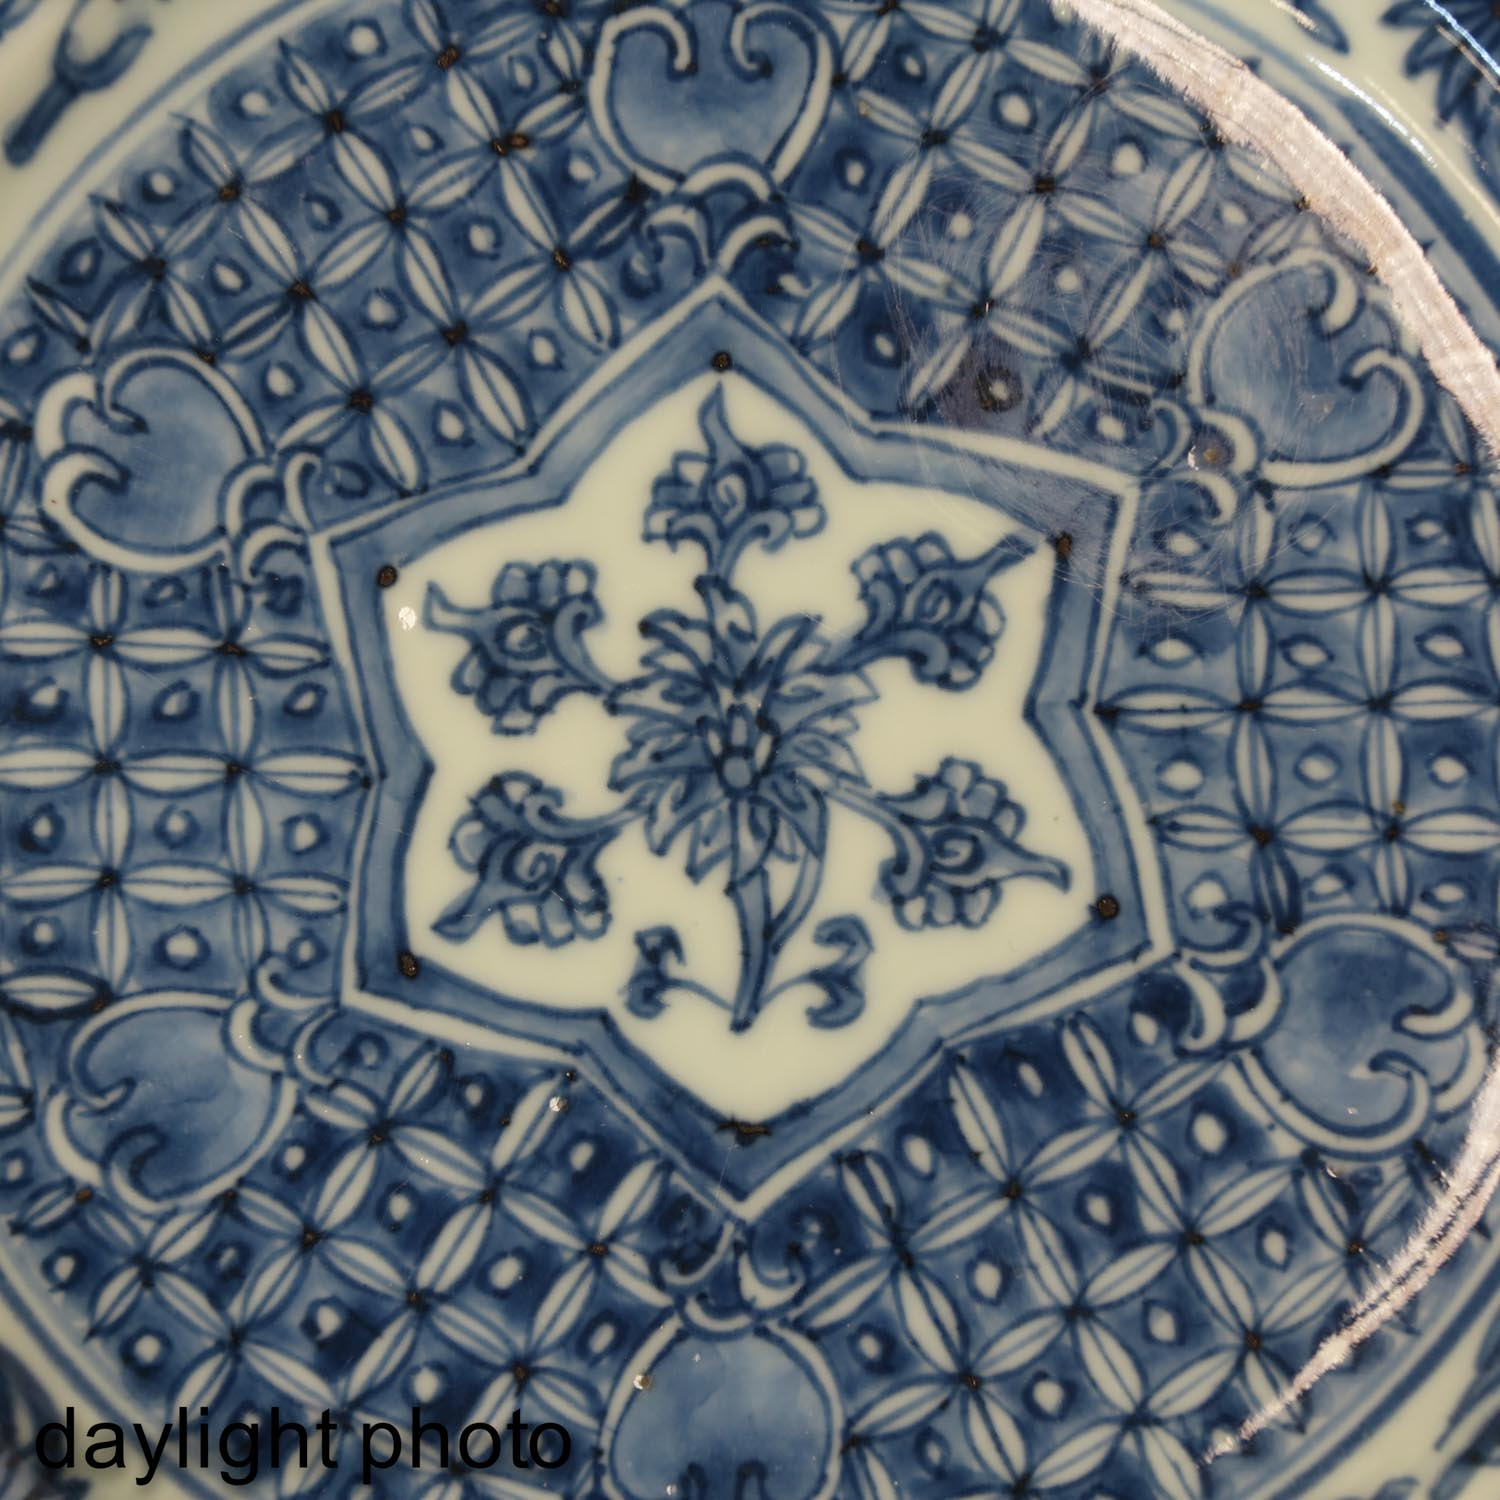 A Lot of 2 Blue and White Plates - Image 10 of 10